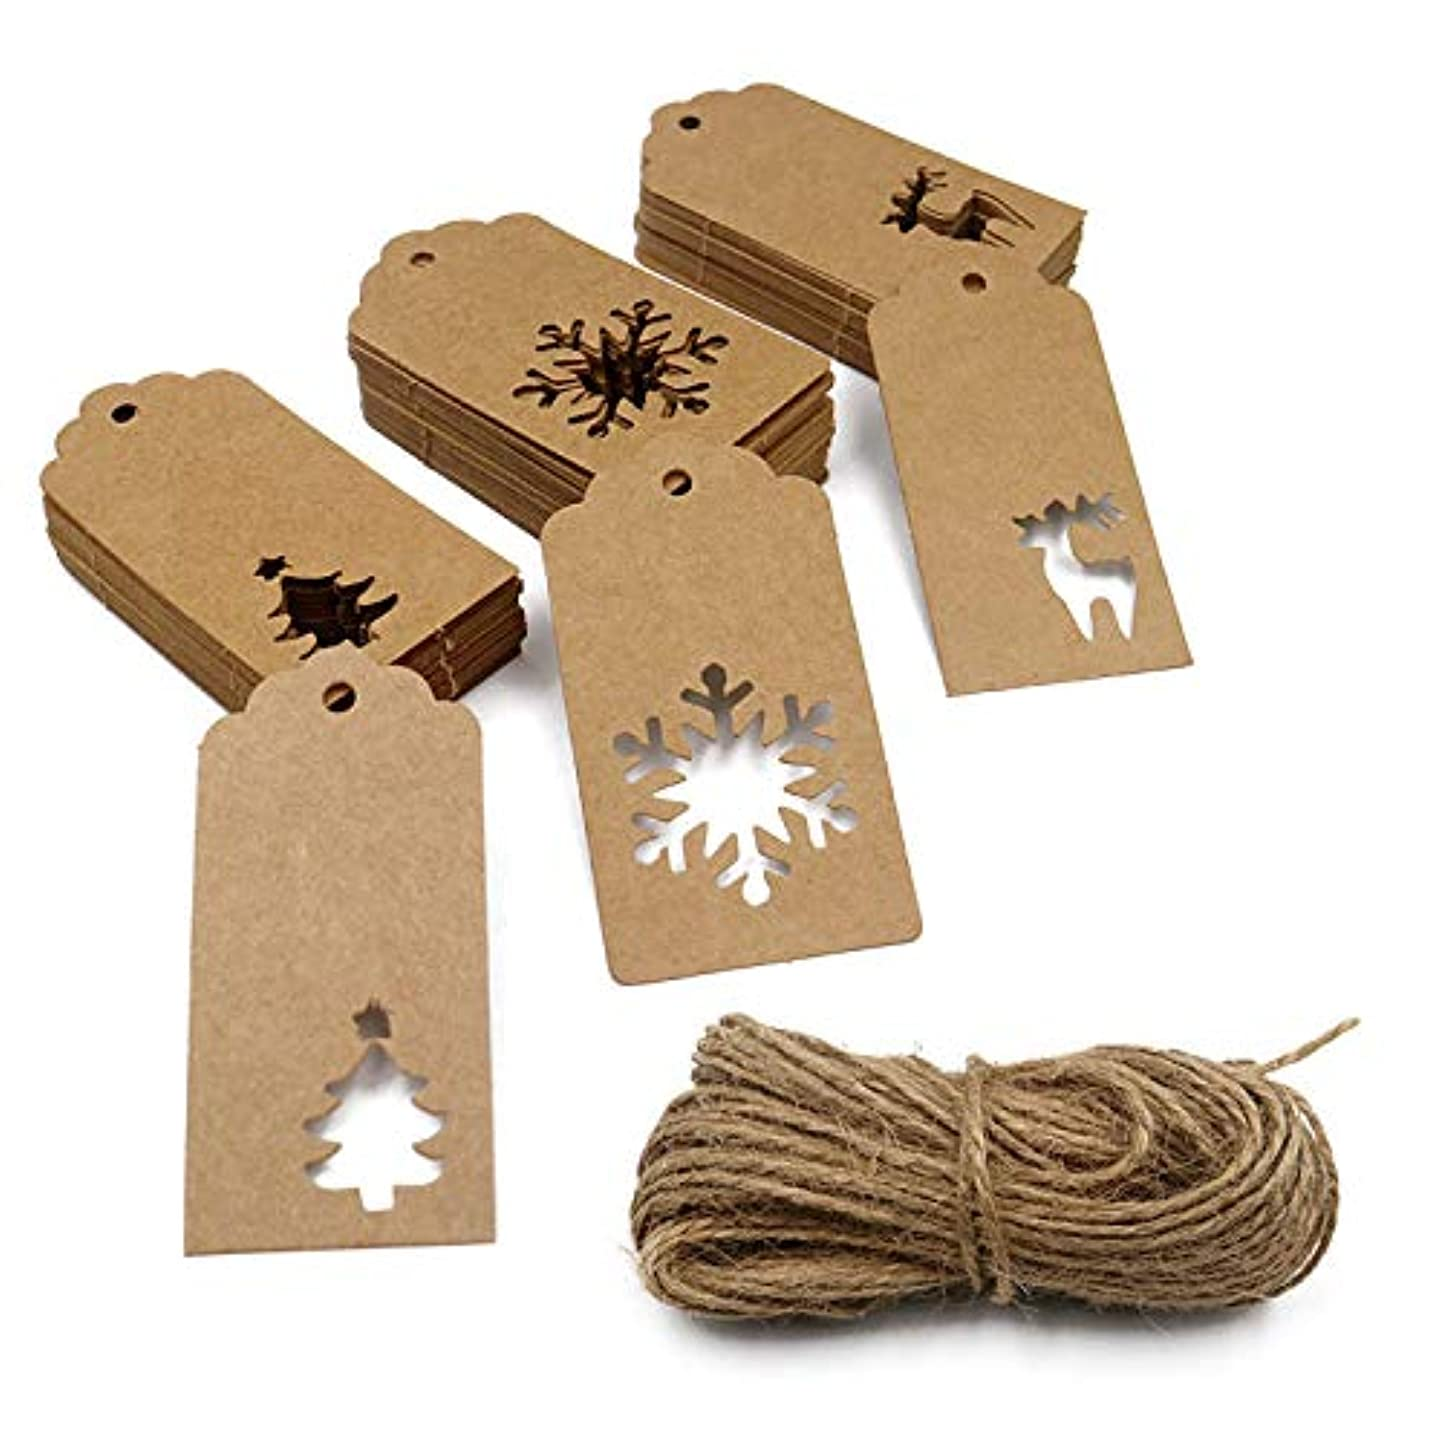 150PCS Christmas Tags, Kraft Paper Gift Tags with 100 Feet Jute Twine Hang Labels Christmas Tree Snowflake Reindeer Design for Arts and Crafts, Wedding Christmas Thanksgiving and Holiday (Brown) vkkoiabjrnvd